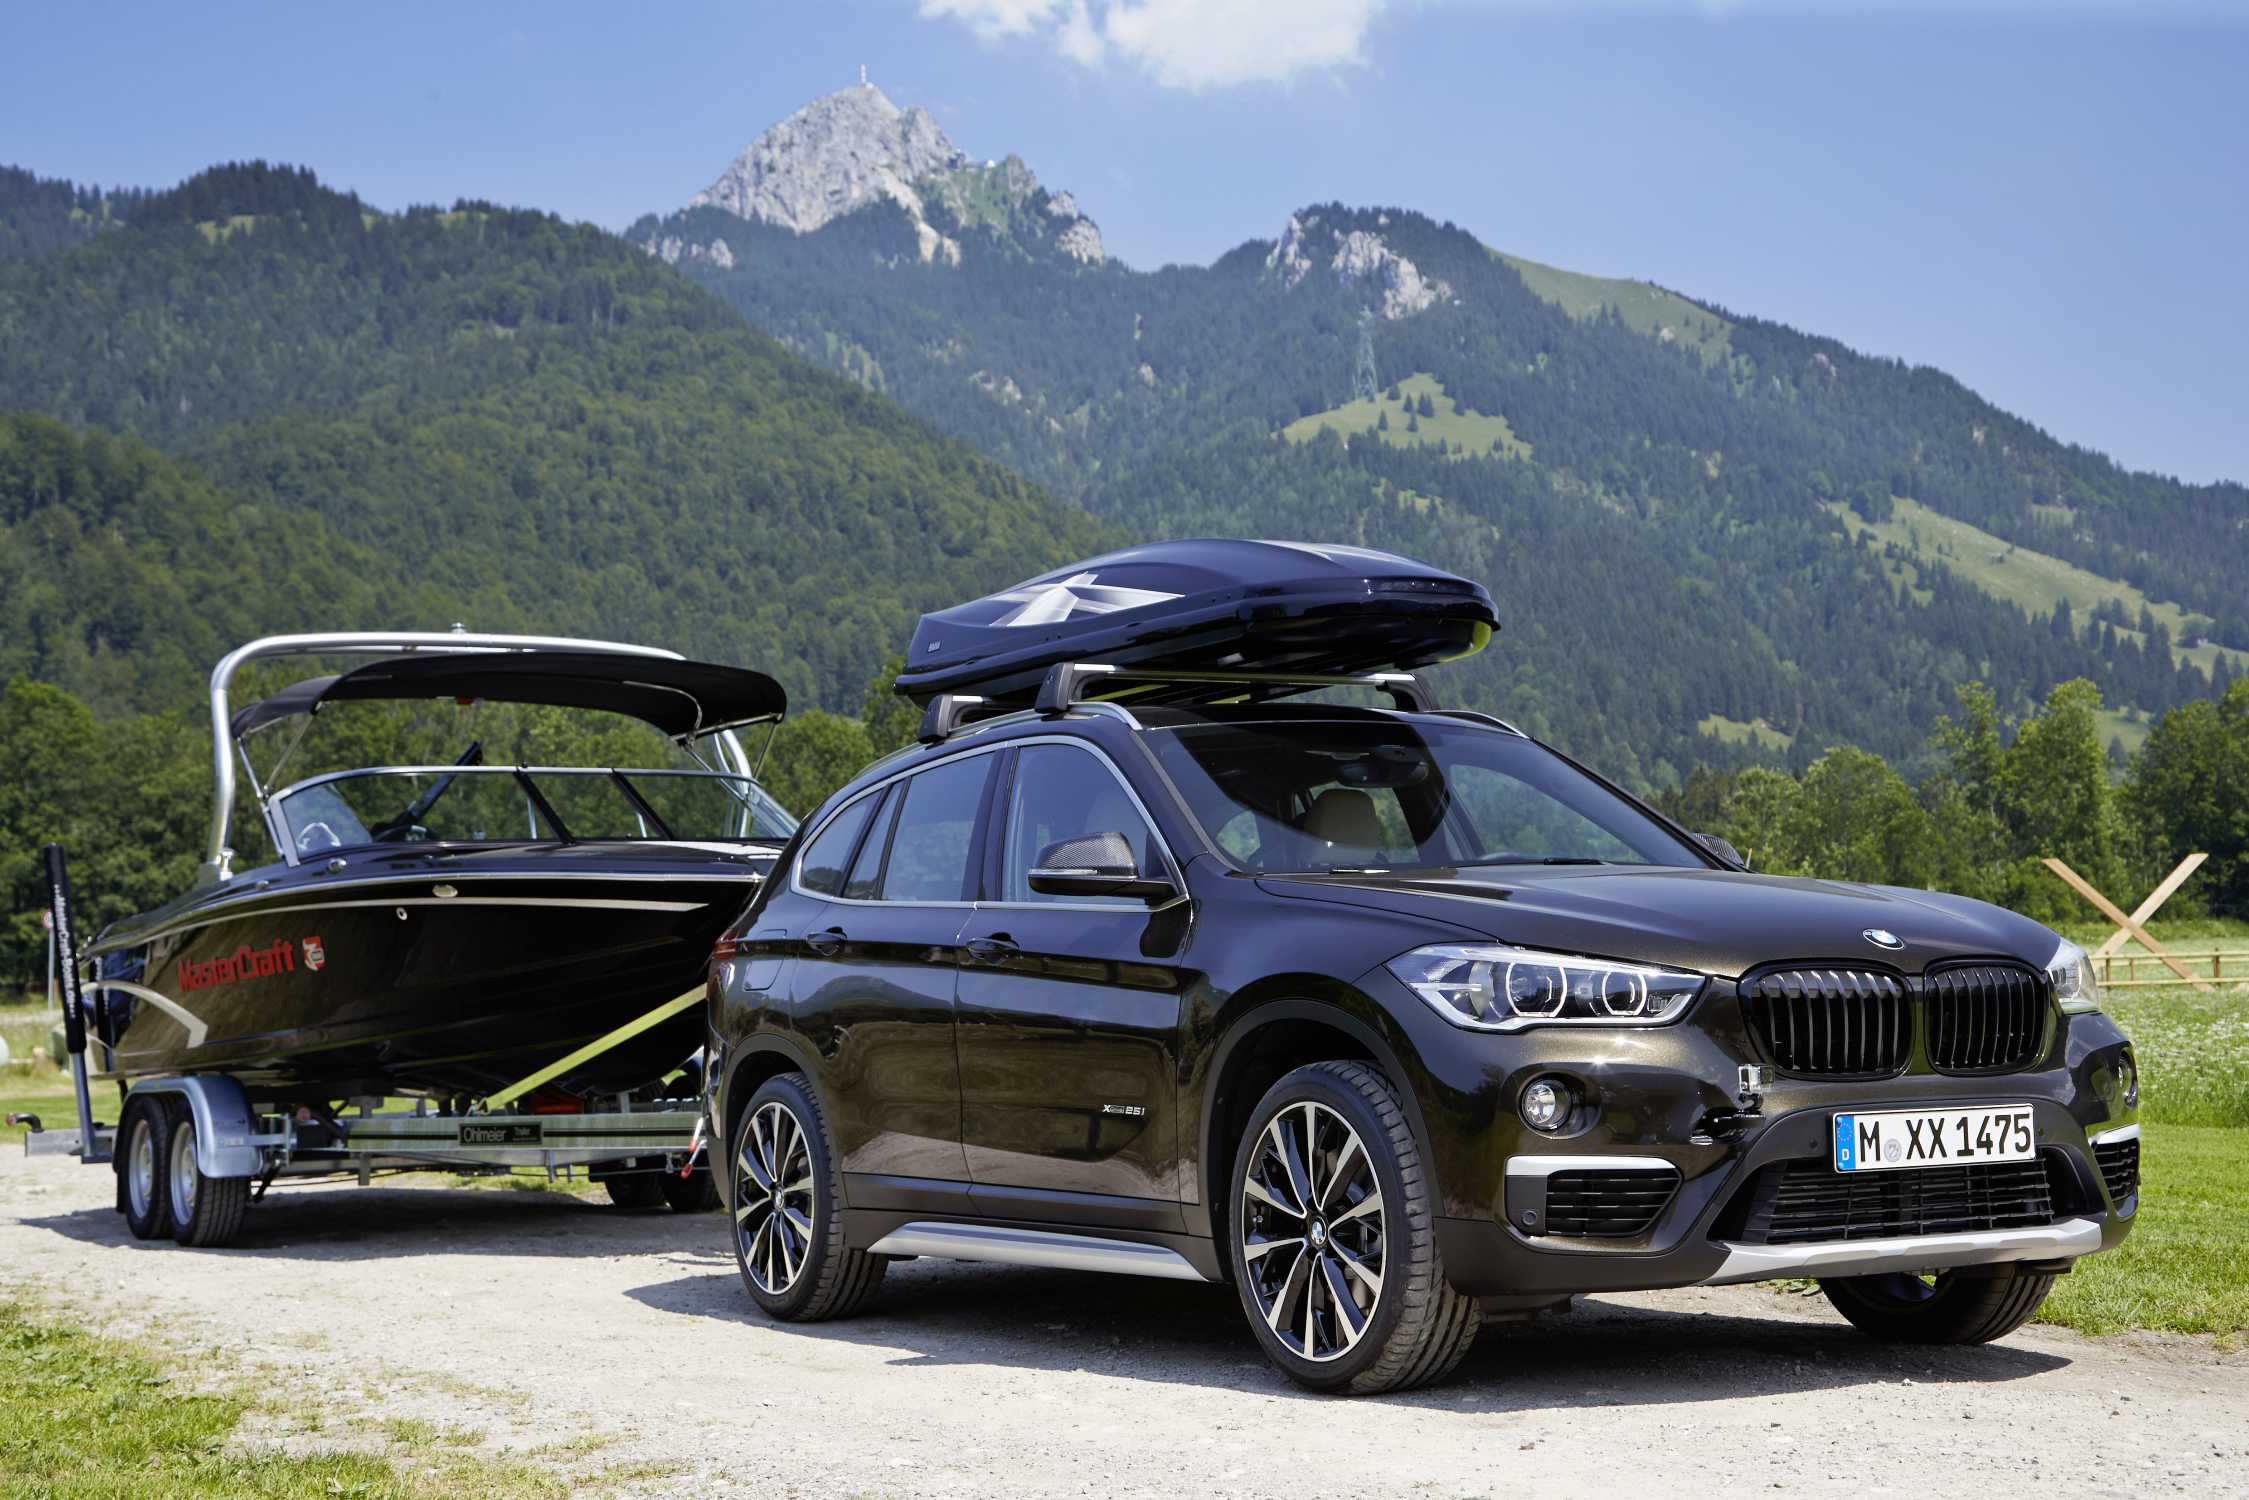 the new bmw x1 on location pictures 19 v spoke 573 black bright turned alloy wheel carbon. Black Bedroom Furniture Sets. Home Design Ideas